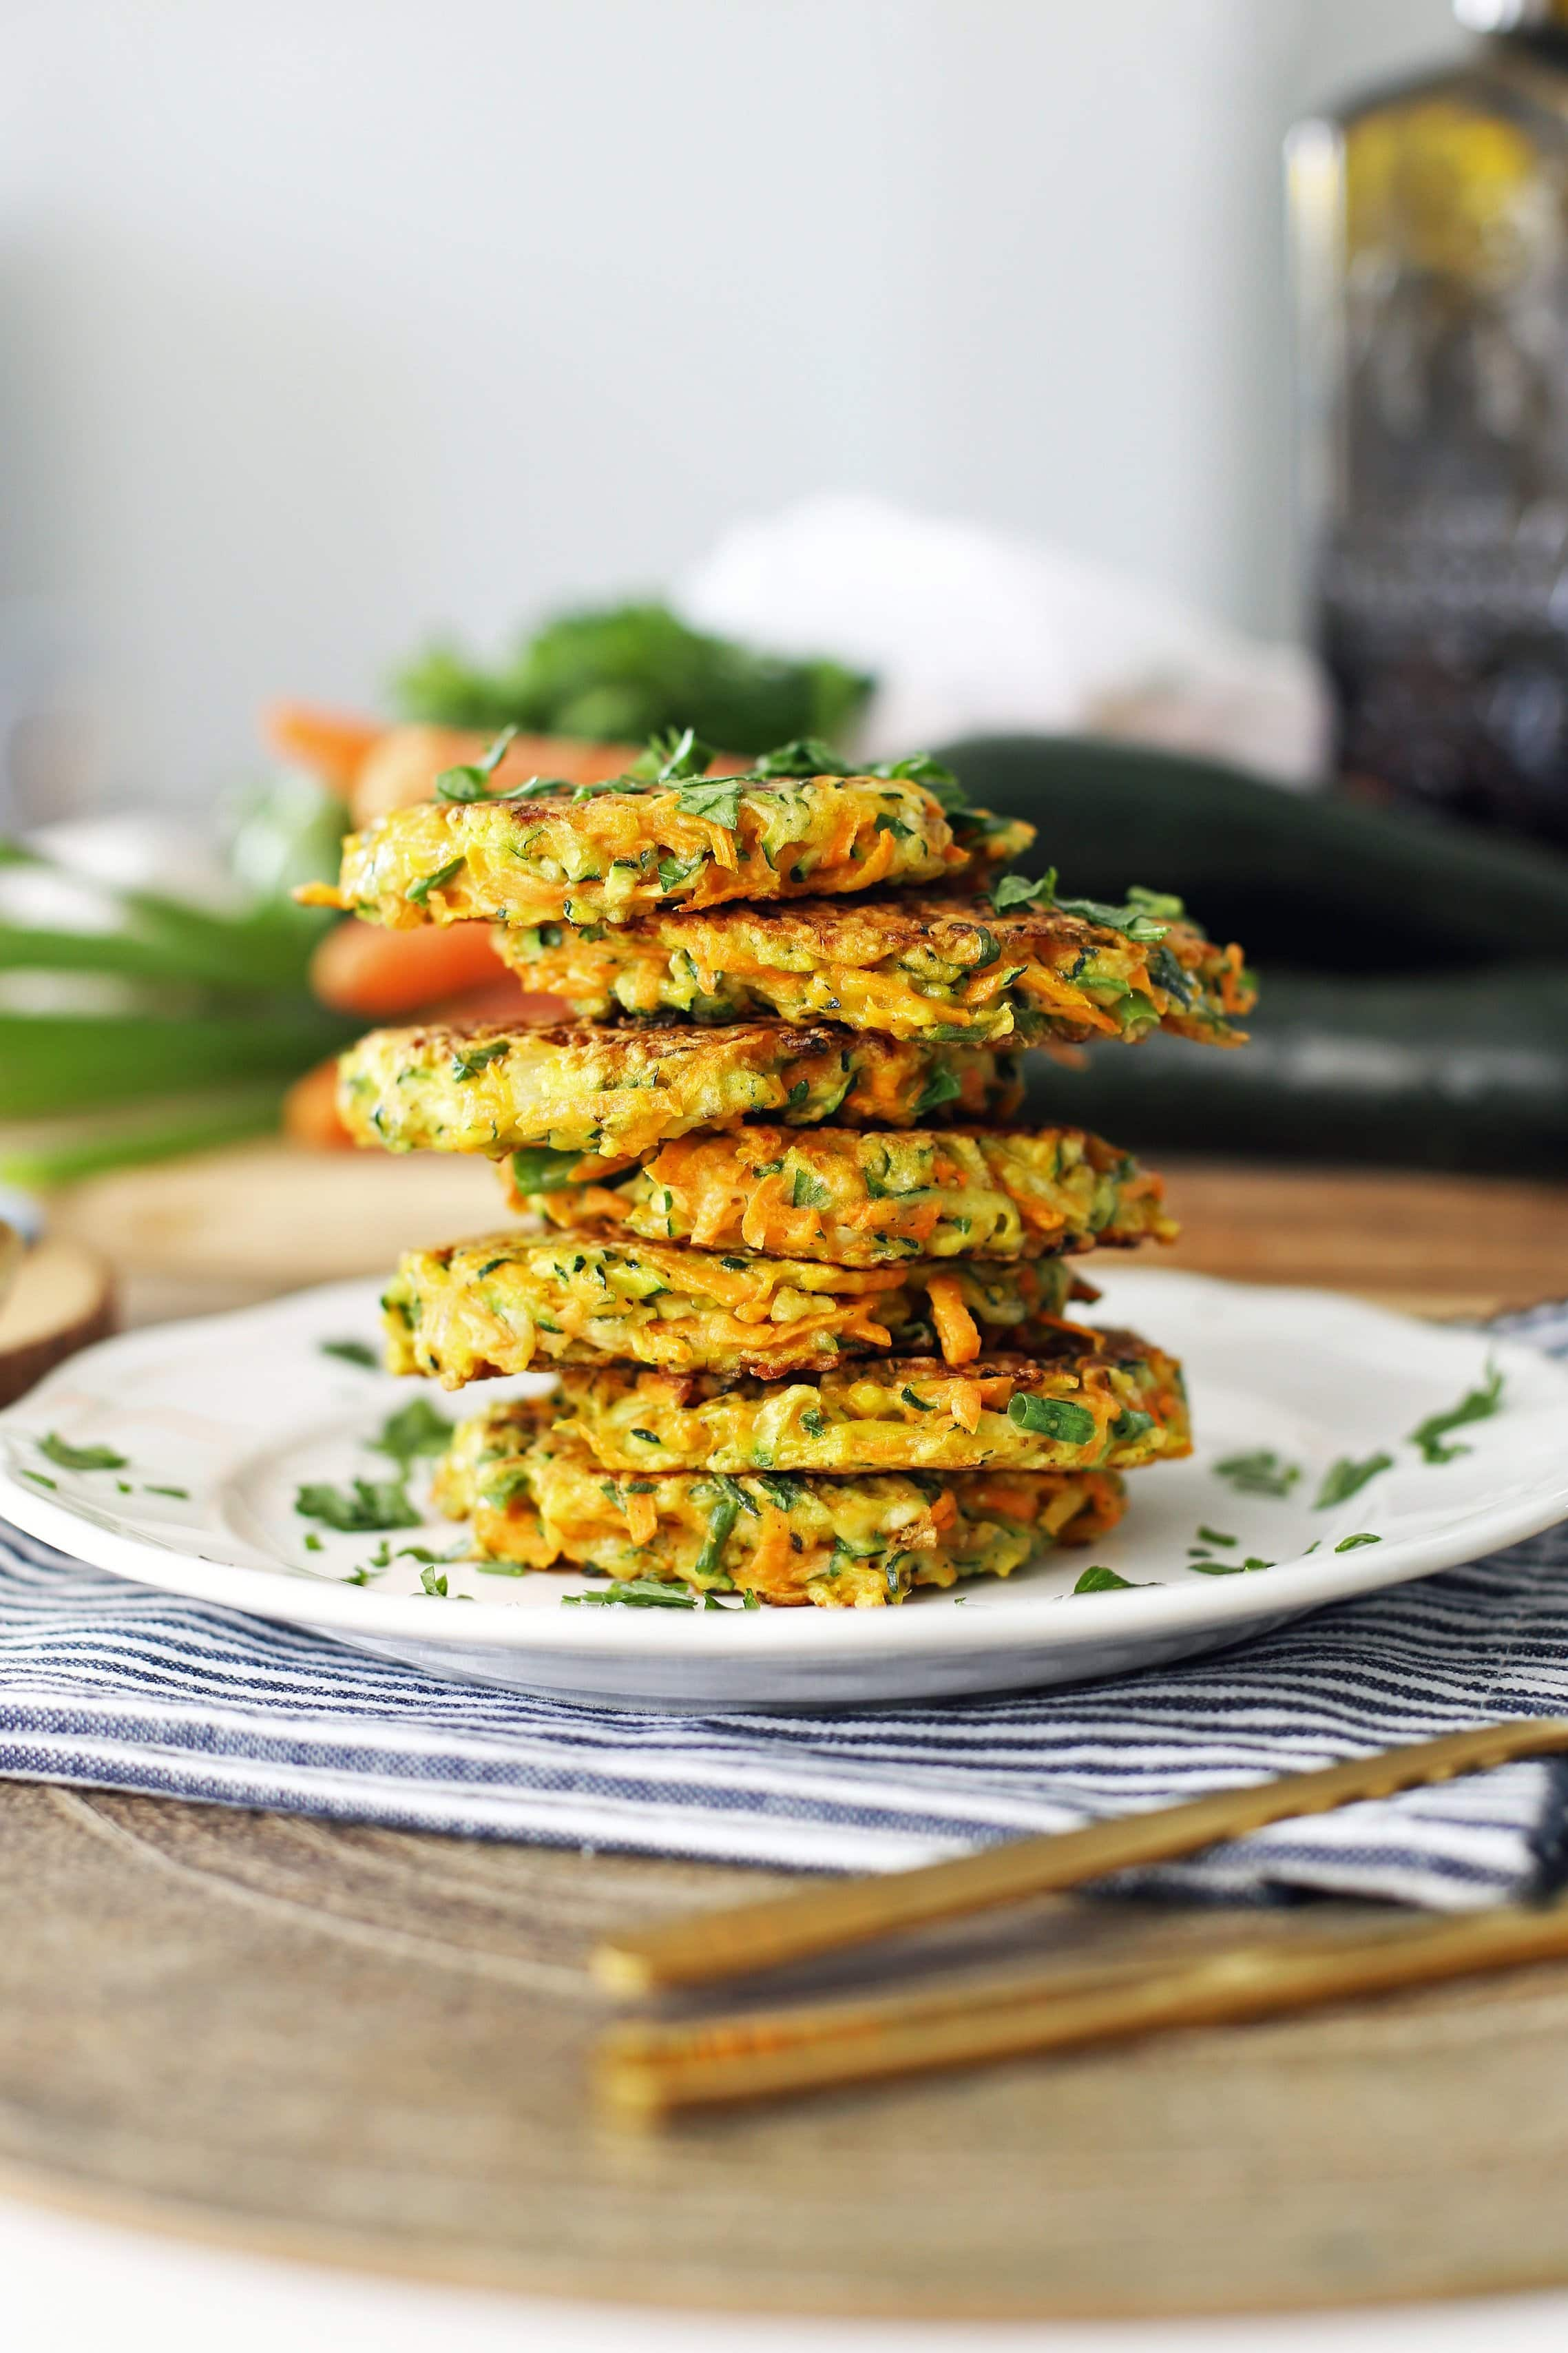 Seven zucchini carrot pancakes placed on top of one another and garnished with fresh parsley on a white plate.